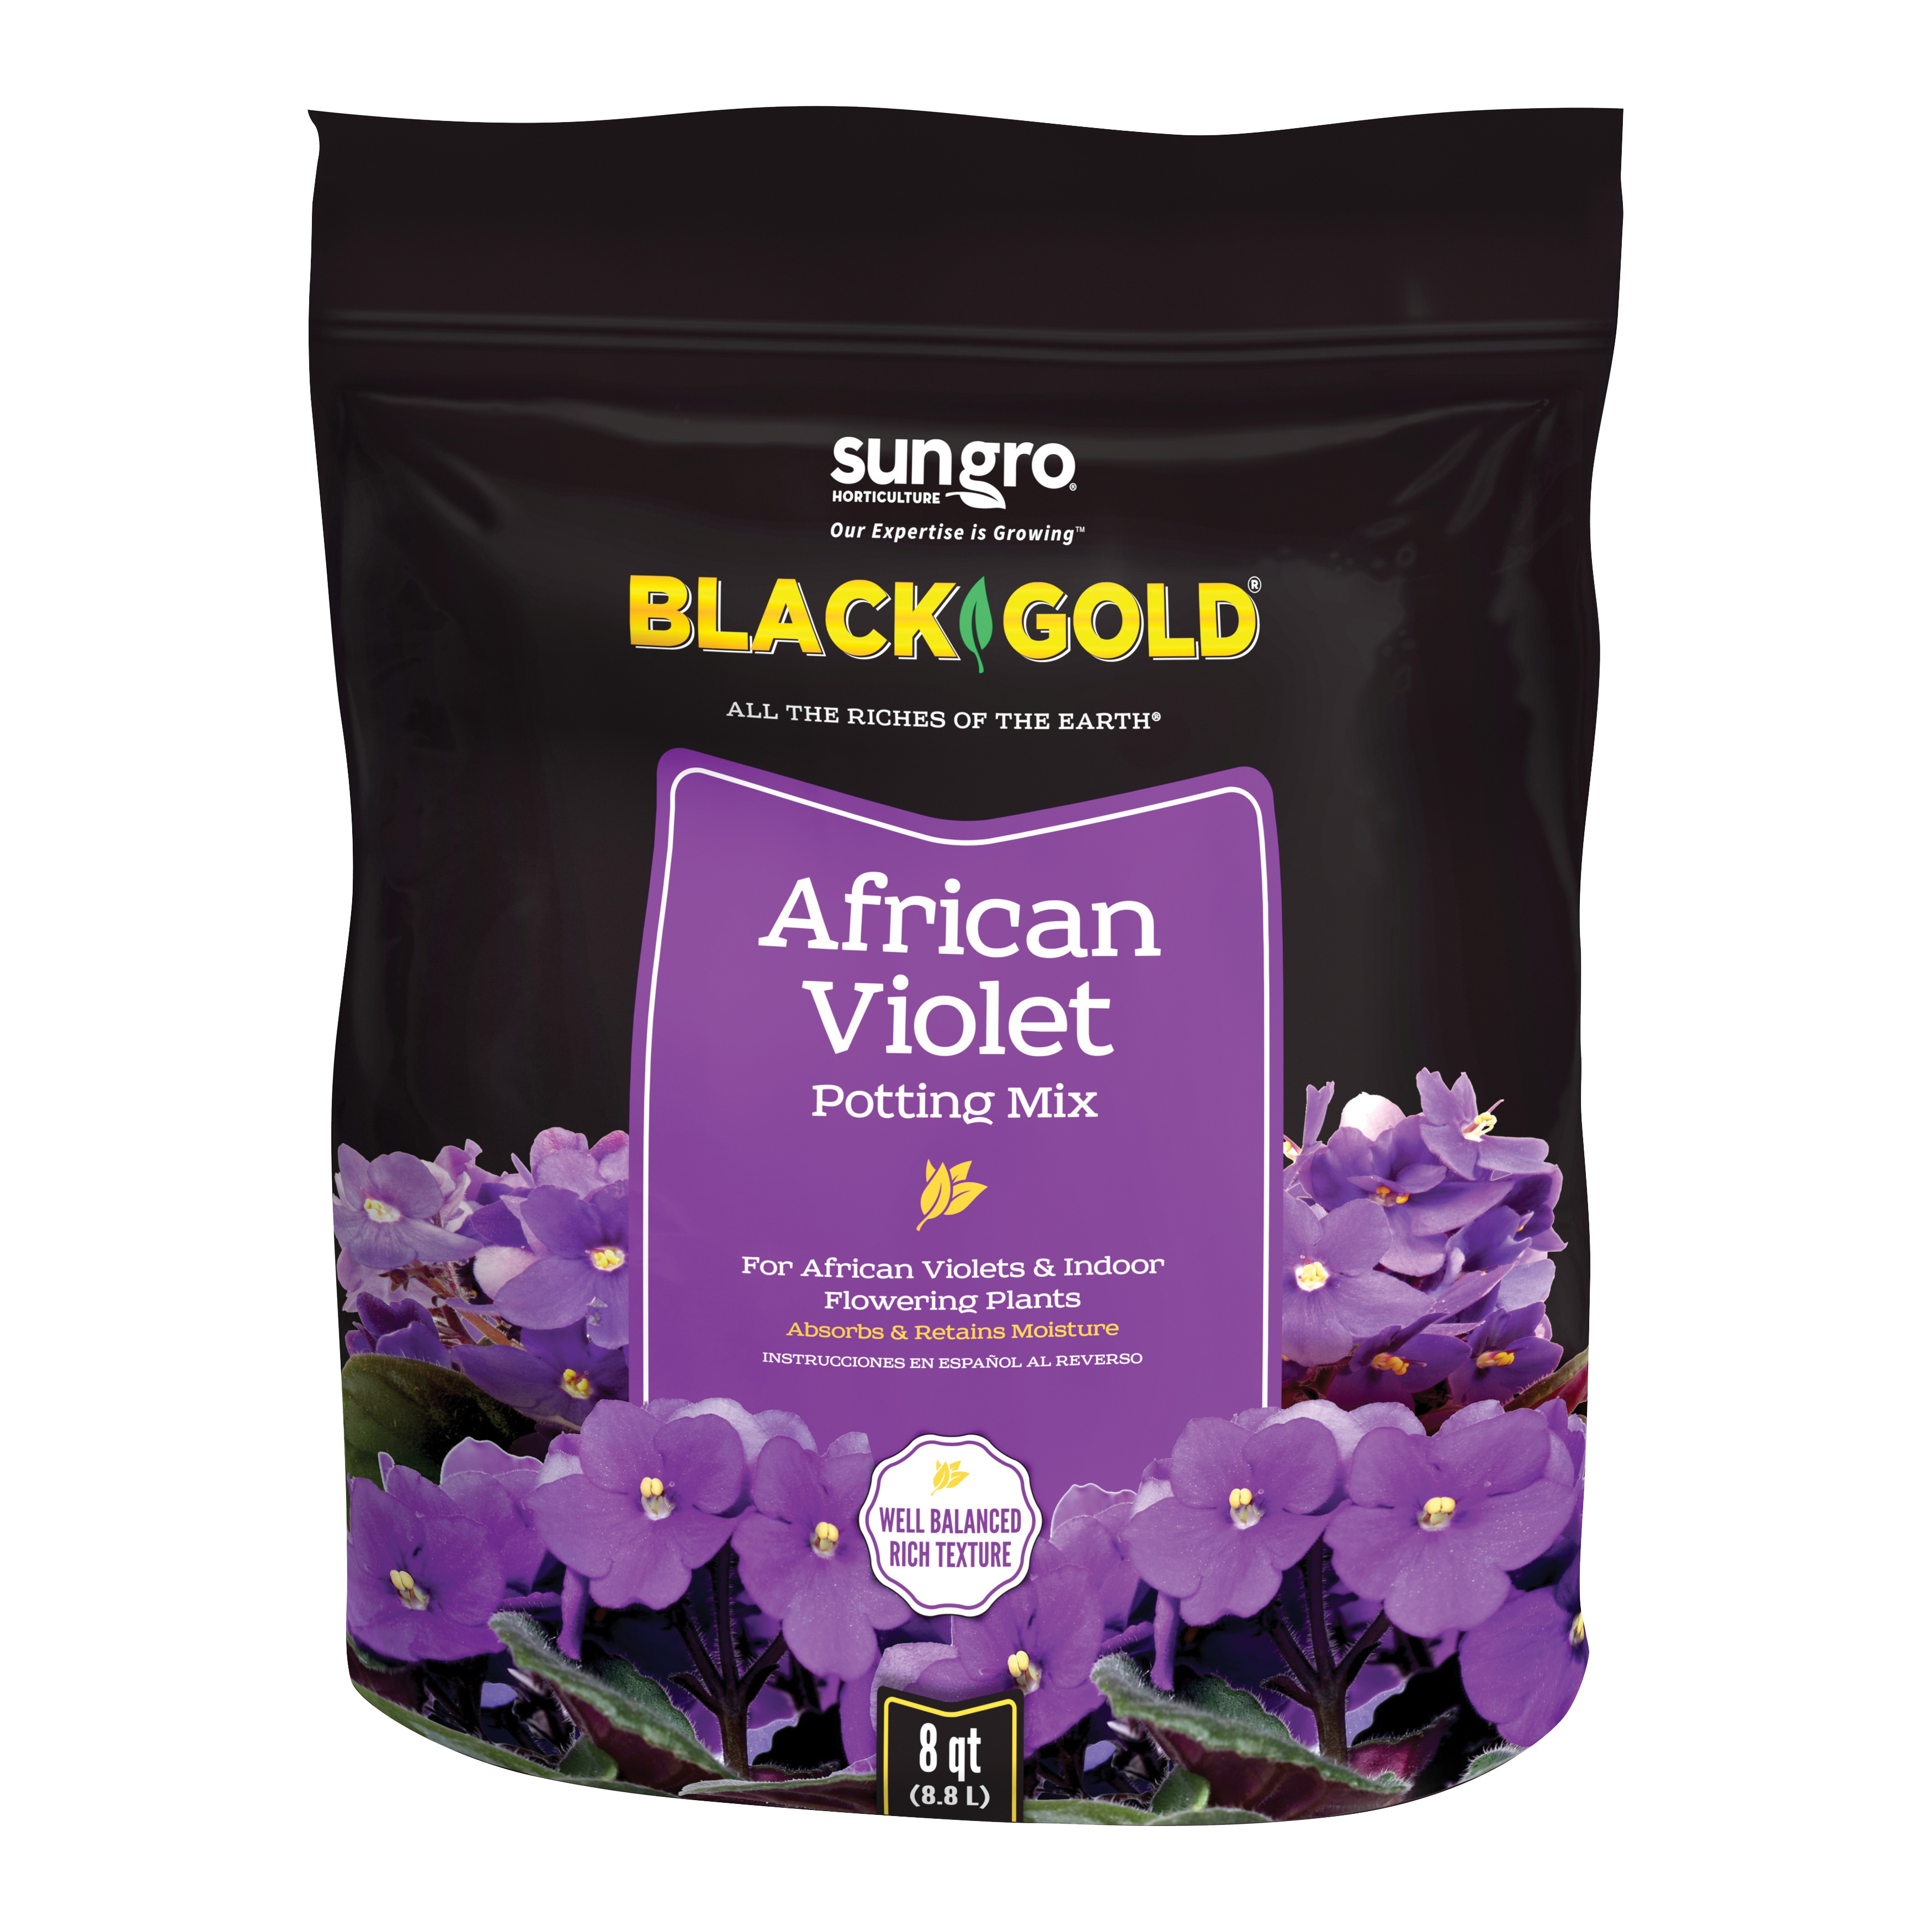 Picture of sun gro BLACK GOLD 1410502 8 QT P African Violet Potting Mix, Granular, Brown/Earthy, 240 Package, Bag